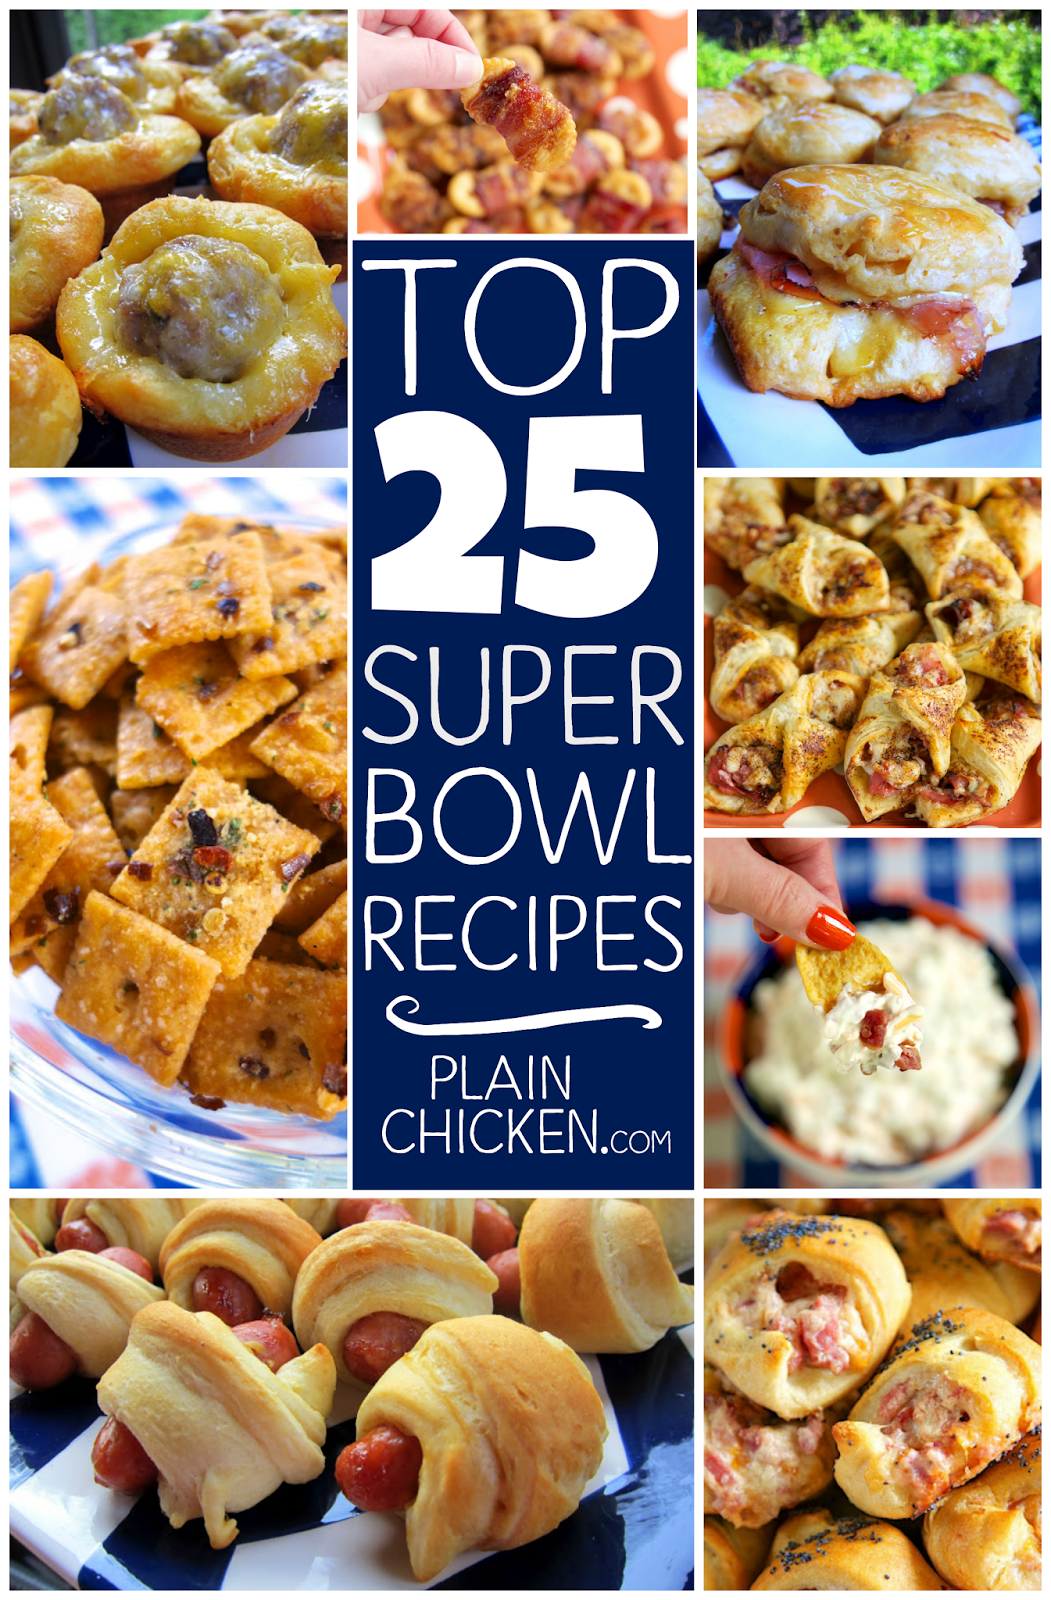 Best 25 Heart Nail Art Ideas On Pinterest: Top 25 Super Bowl Recipes